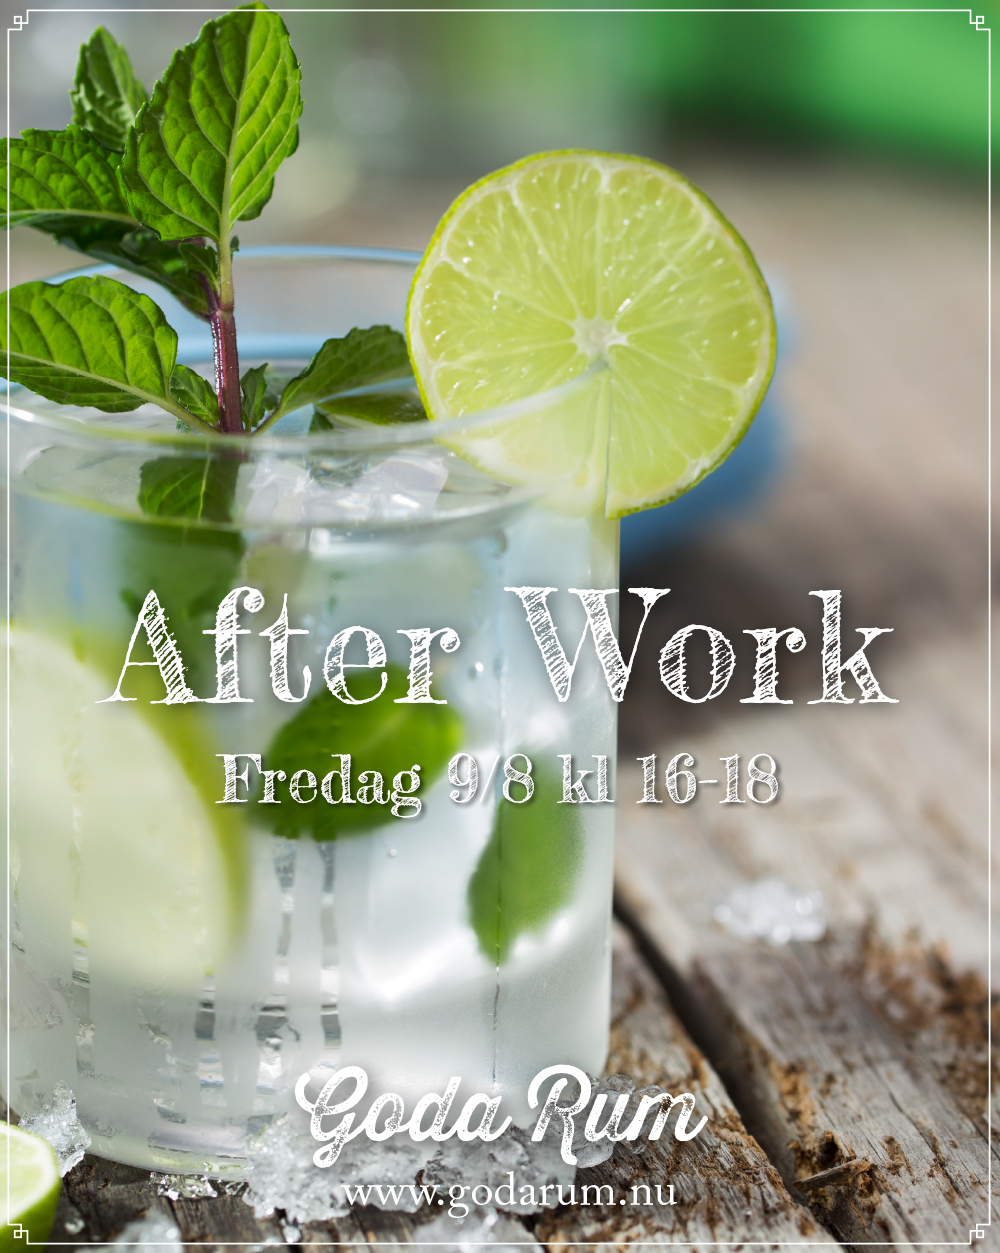 012_After Work_9aug